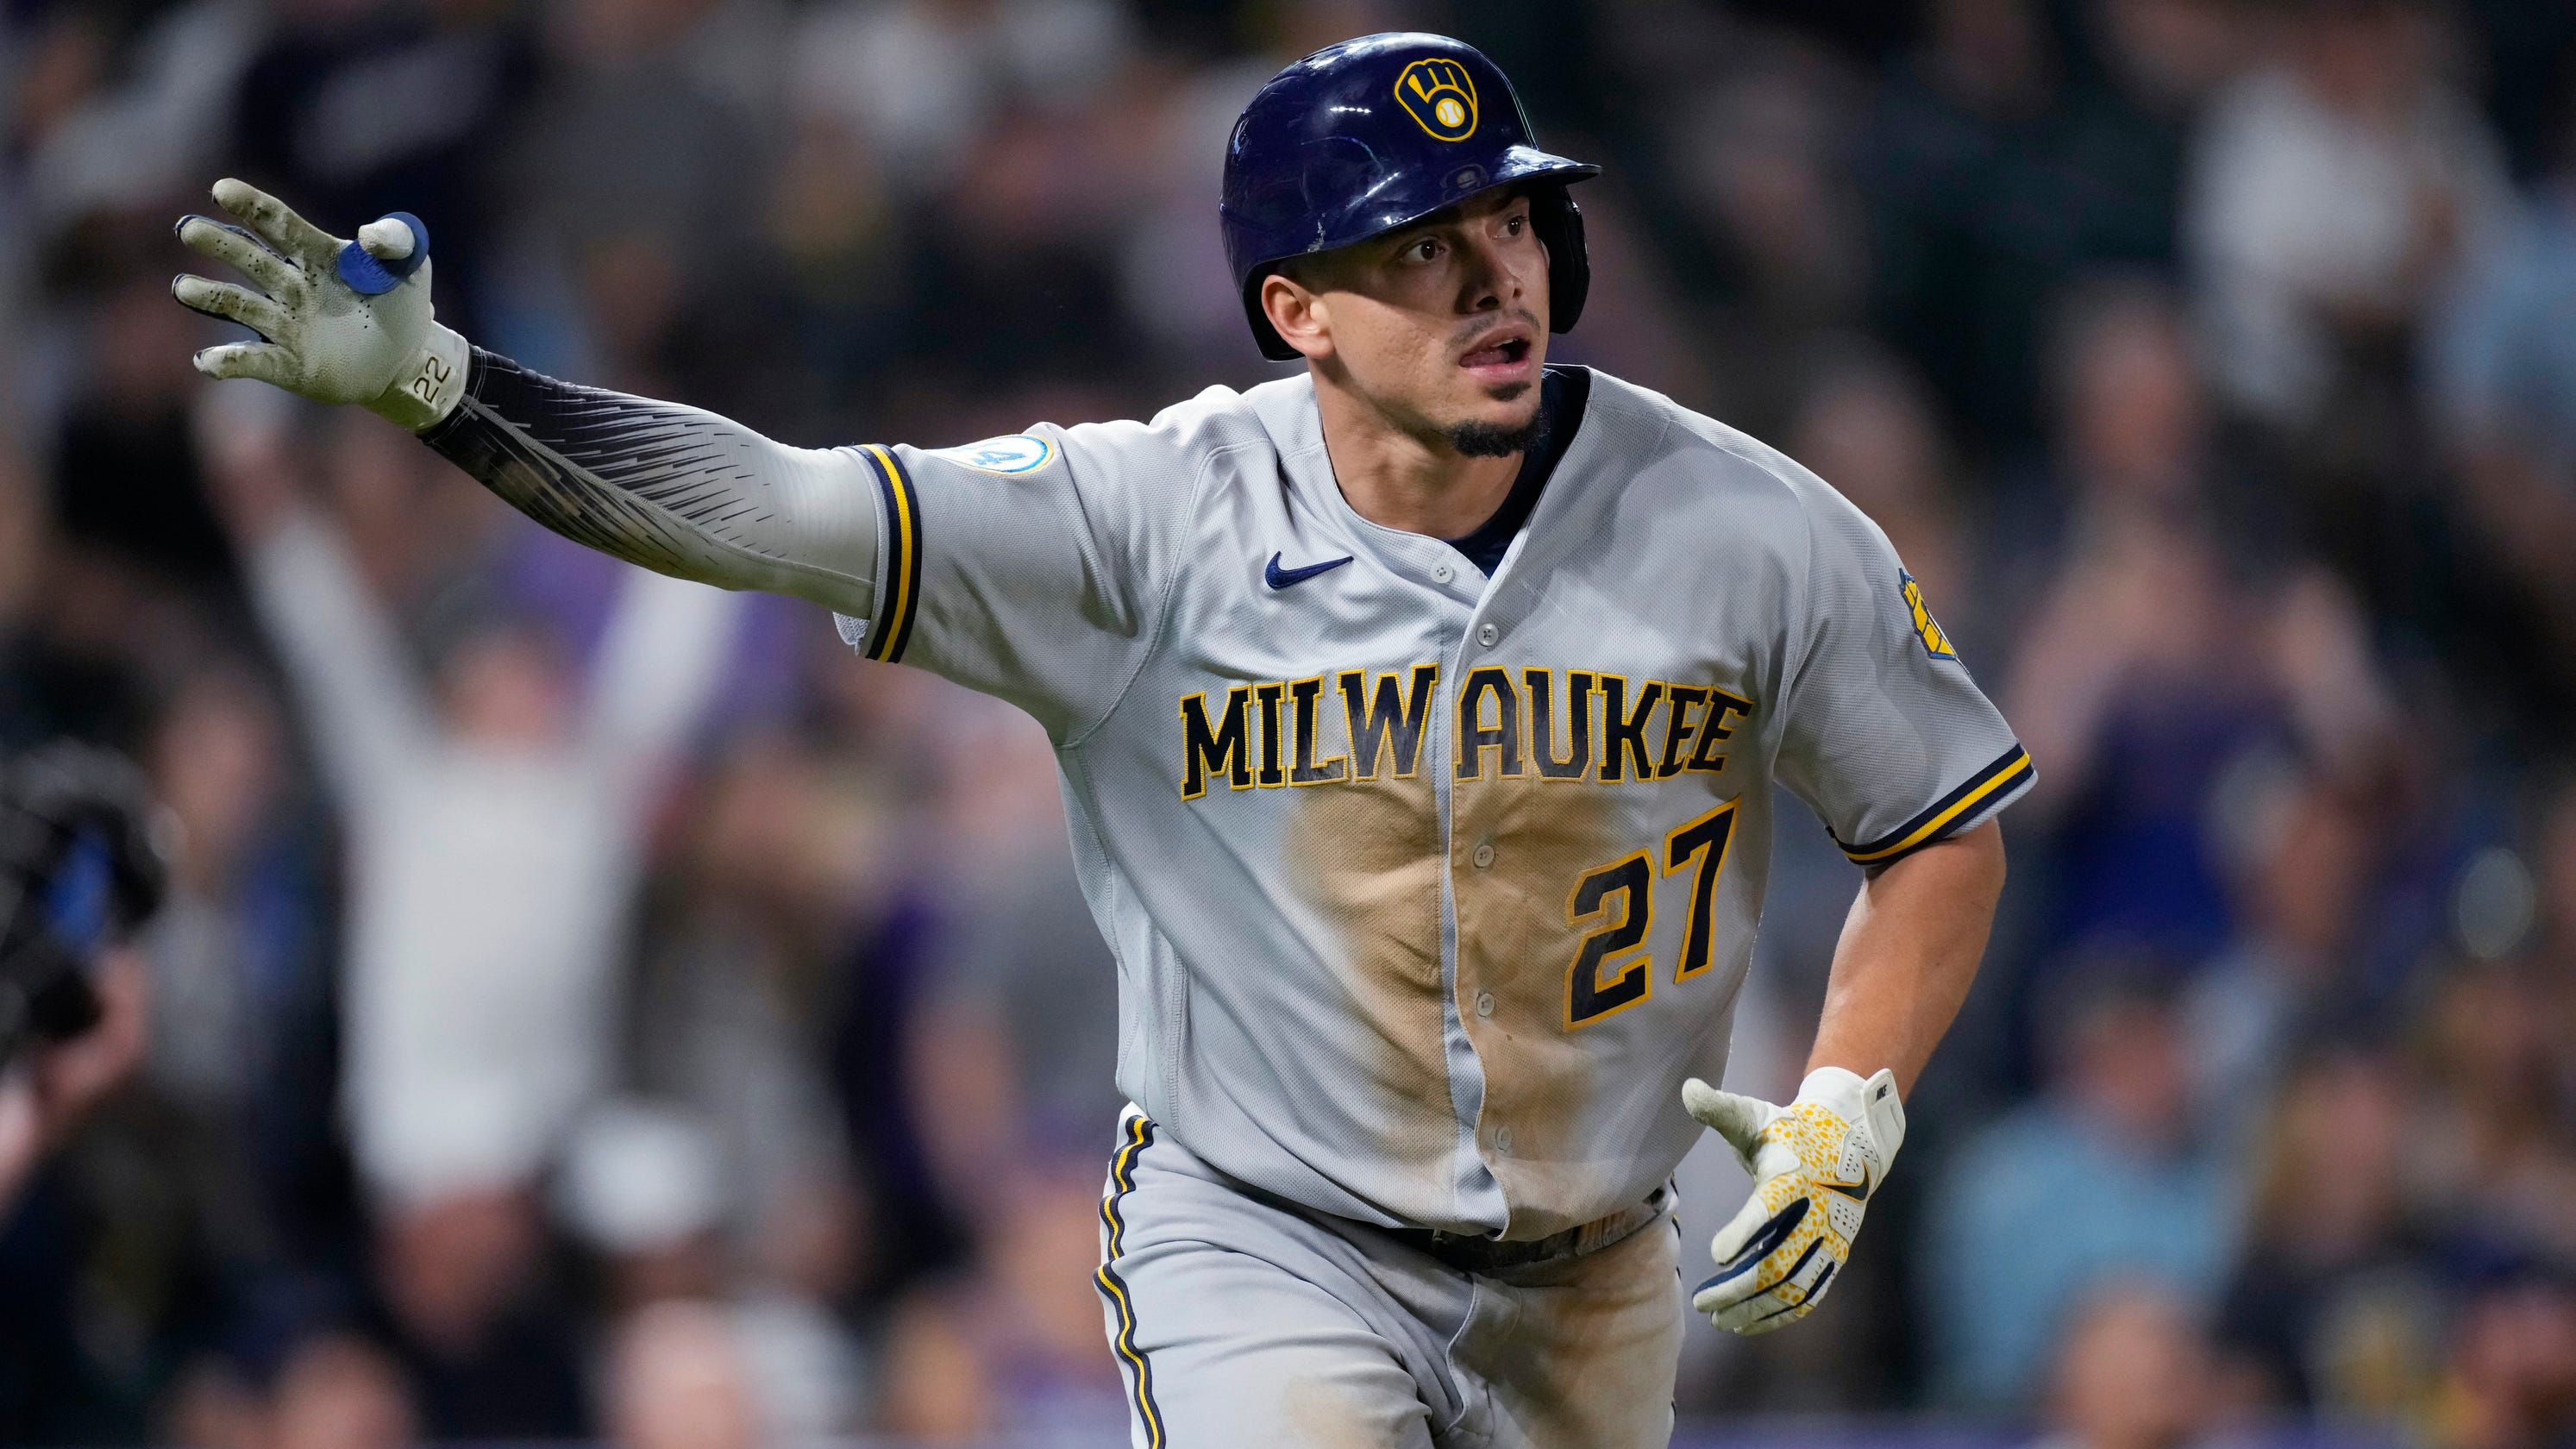 Brewers 6, Rockies 5: Two-run homer in ninth by Willy Adames gives sagging club a much-needed victory